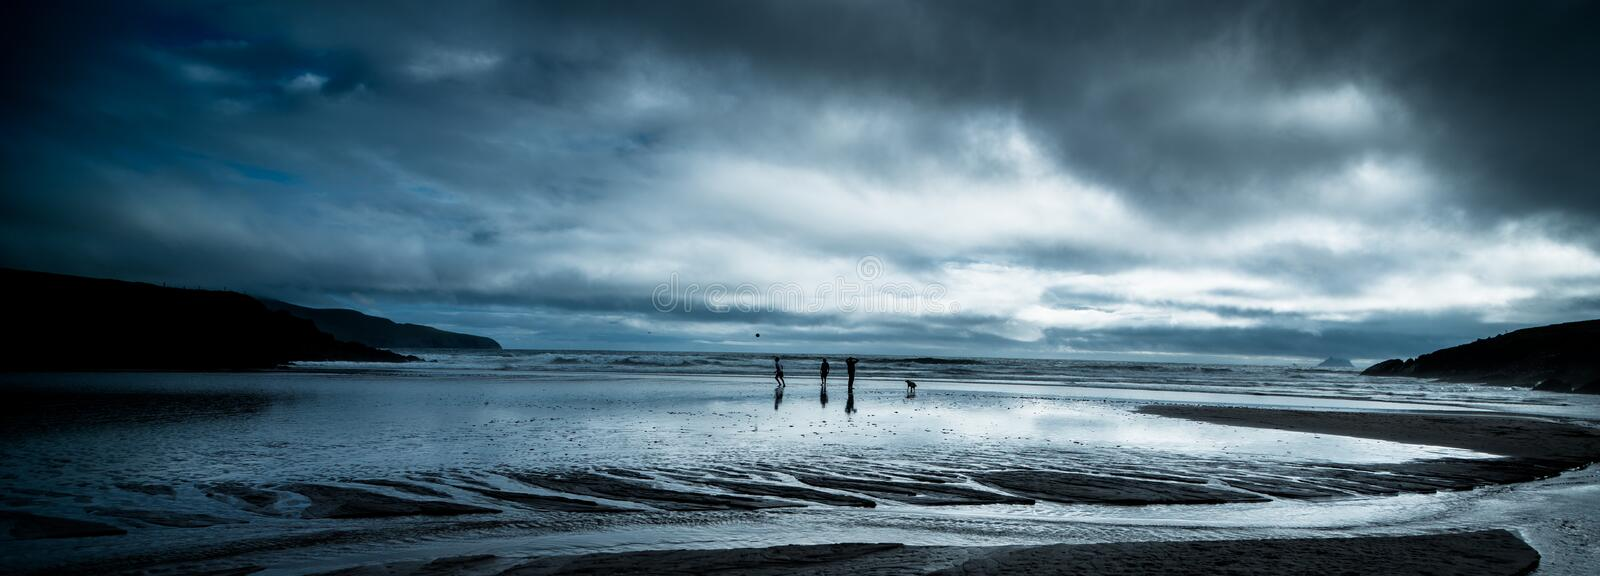 People on a beach under approaching storm clouds royalty free stock image